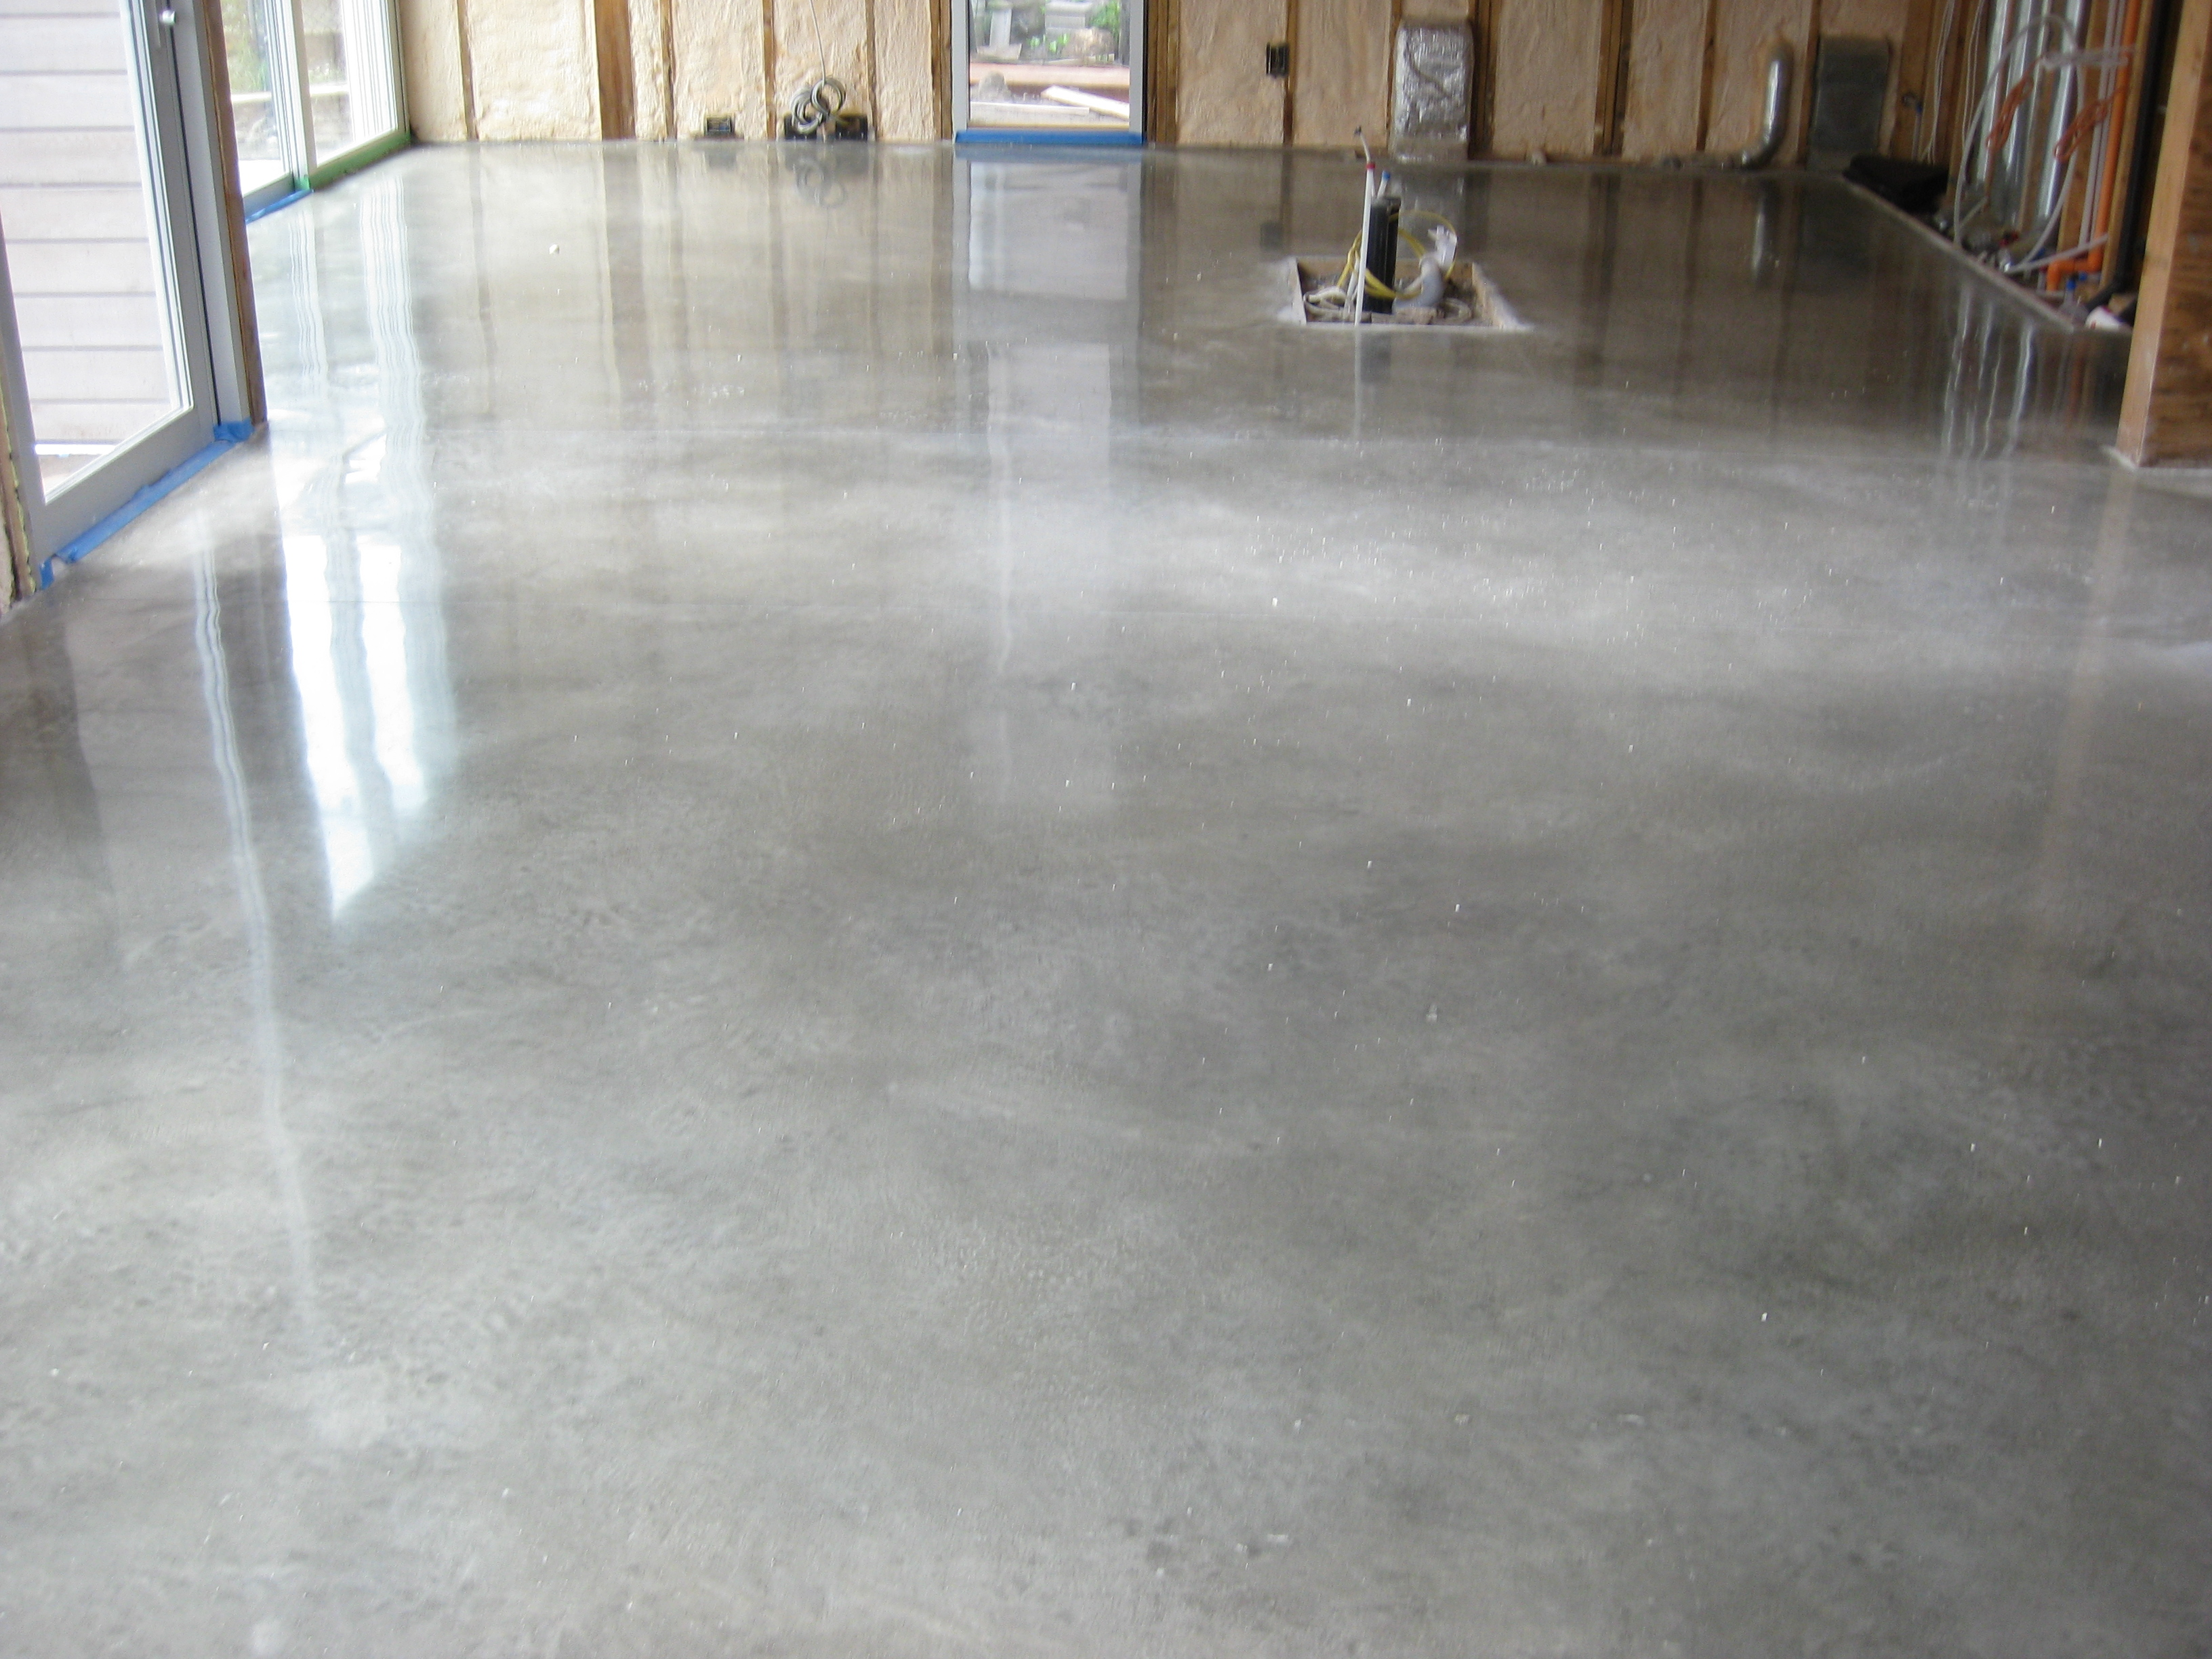 Why polished concrete floor is better than others flooring options view in gallery polished concrete floors reside white polished concrete ntial polished concrete floor tiles dailygadgetfo Image collections